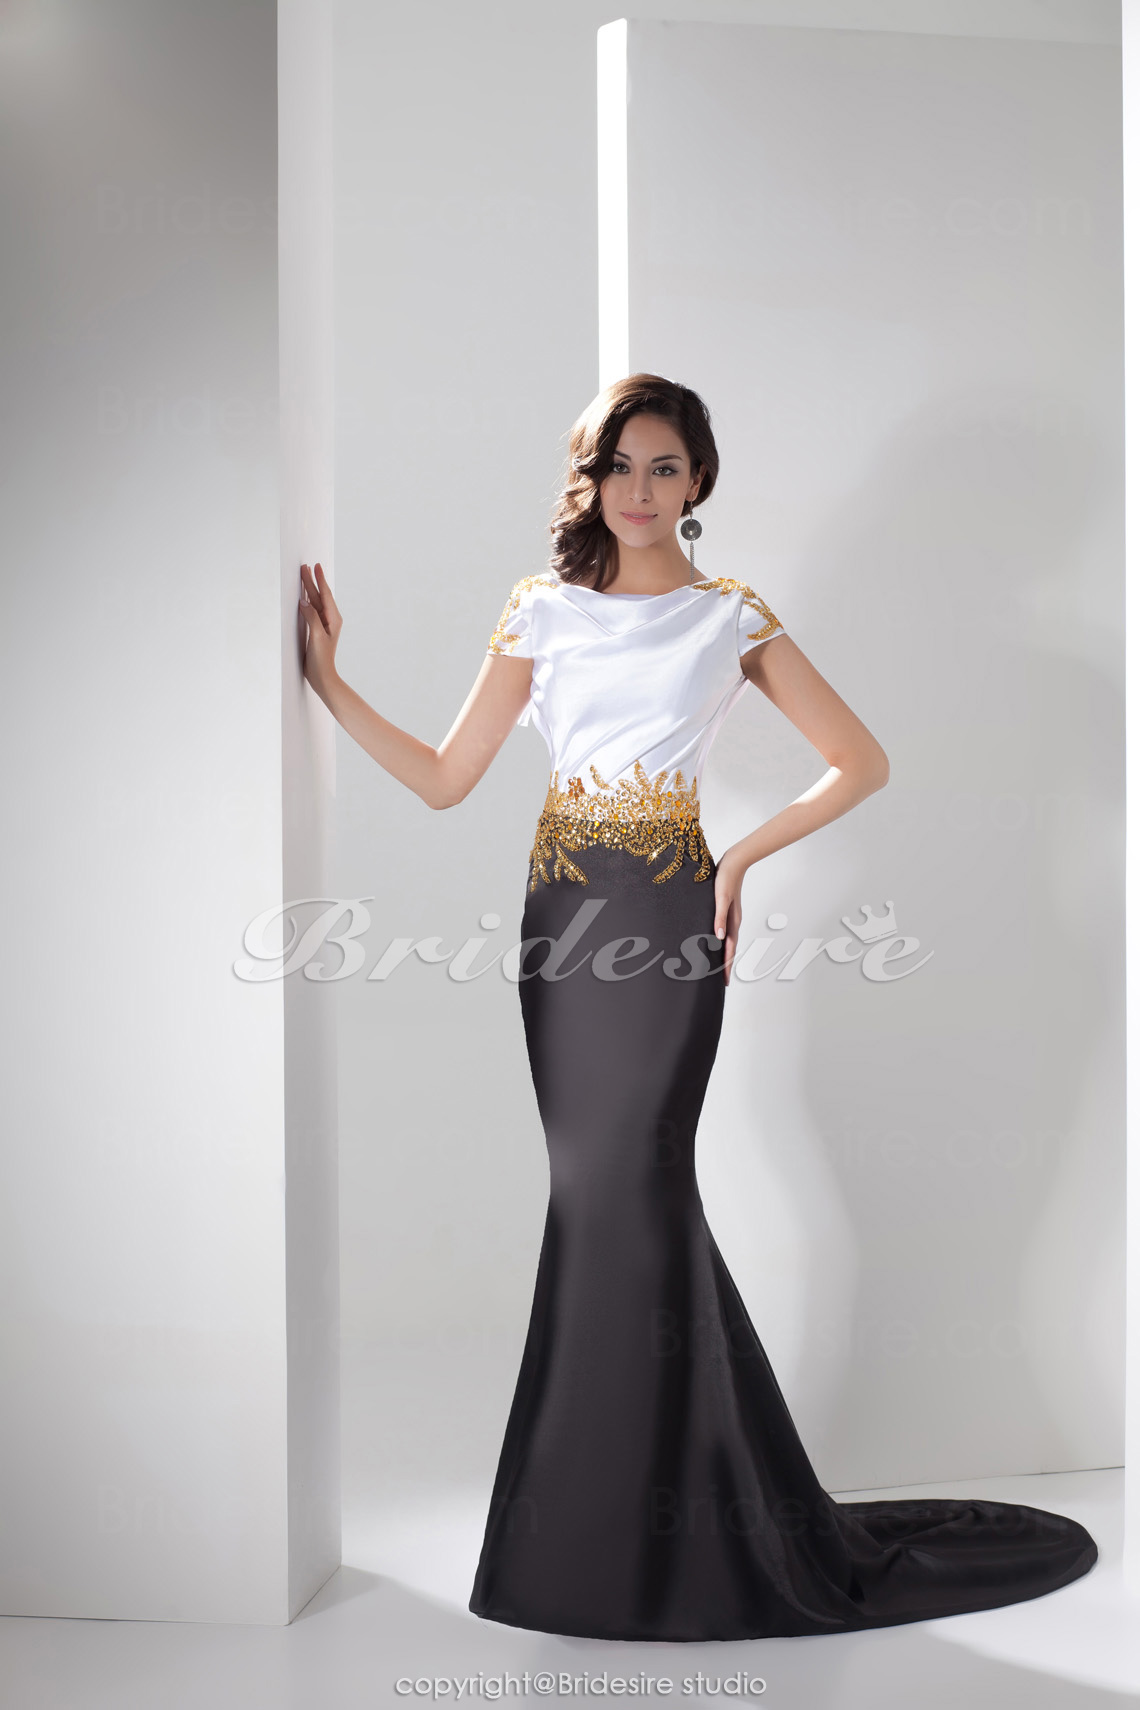 Trumpet/Mermaid Jewel Floor-length Sweep Train Short Sleeve Satin Dress